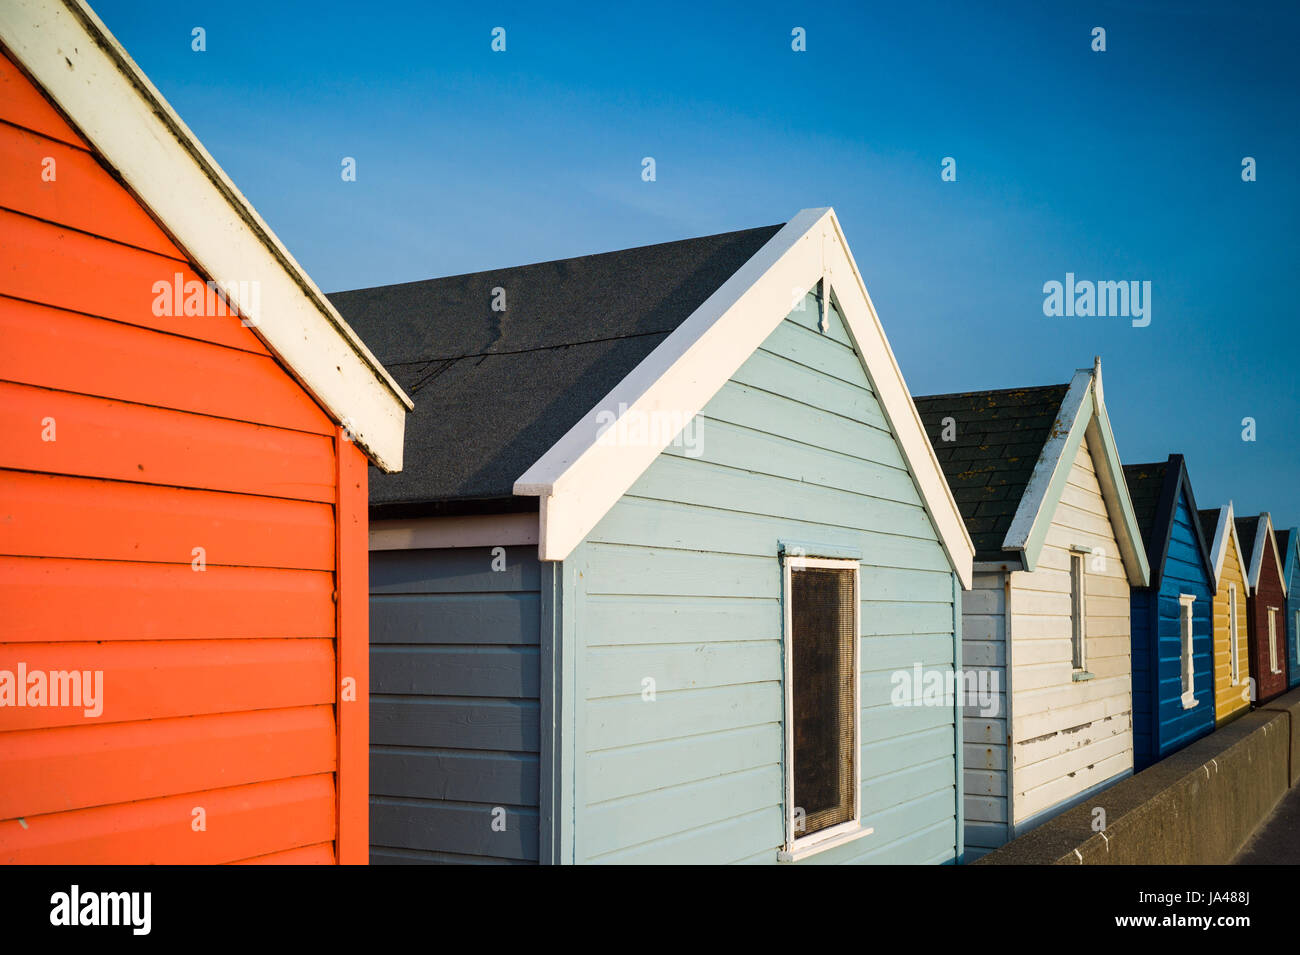 Brightly painted Beach Huts in the small seaside resort of Southwold in Suffolk, UK. - Stock Image